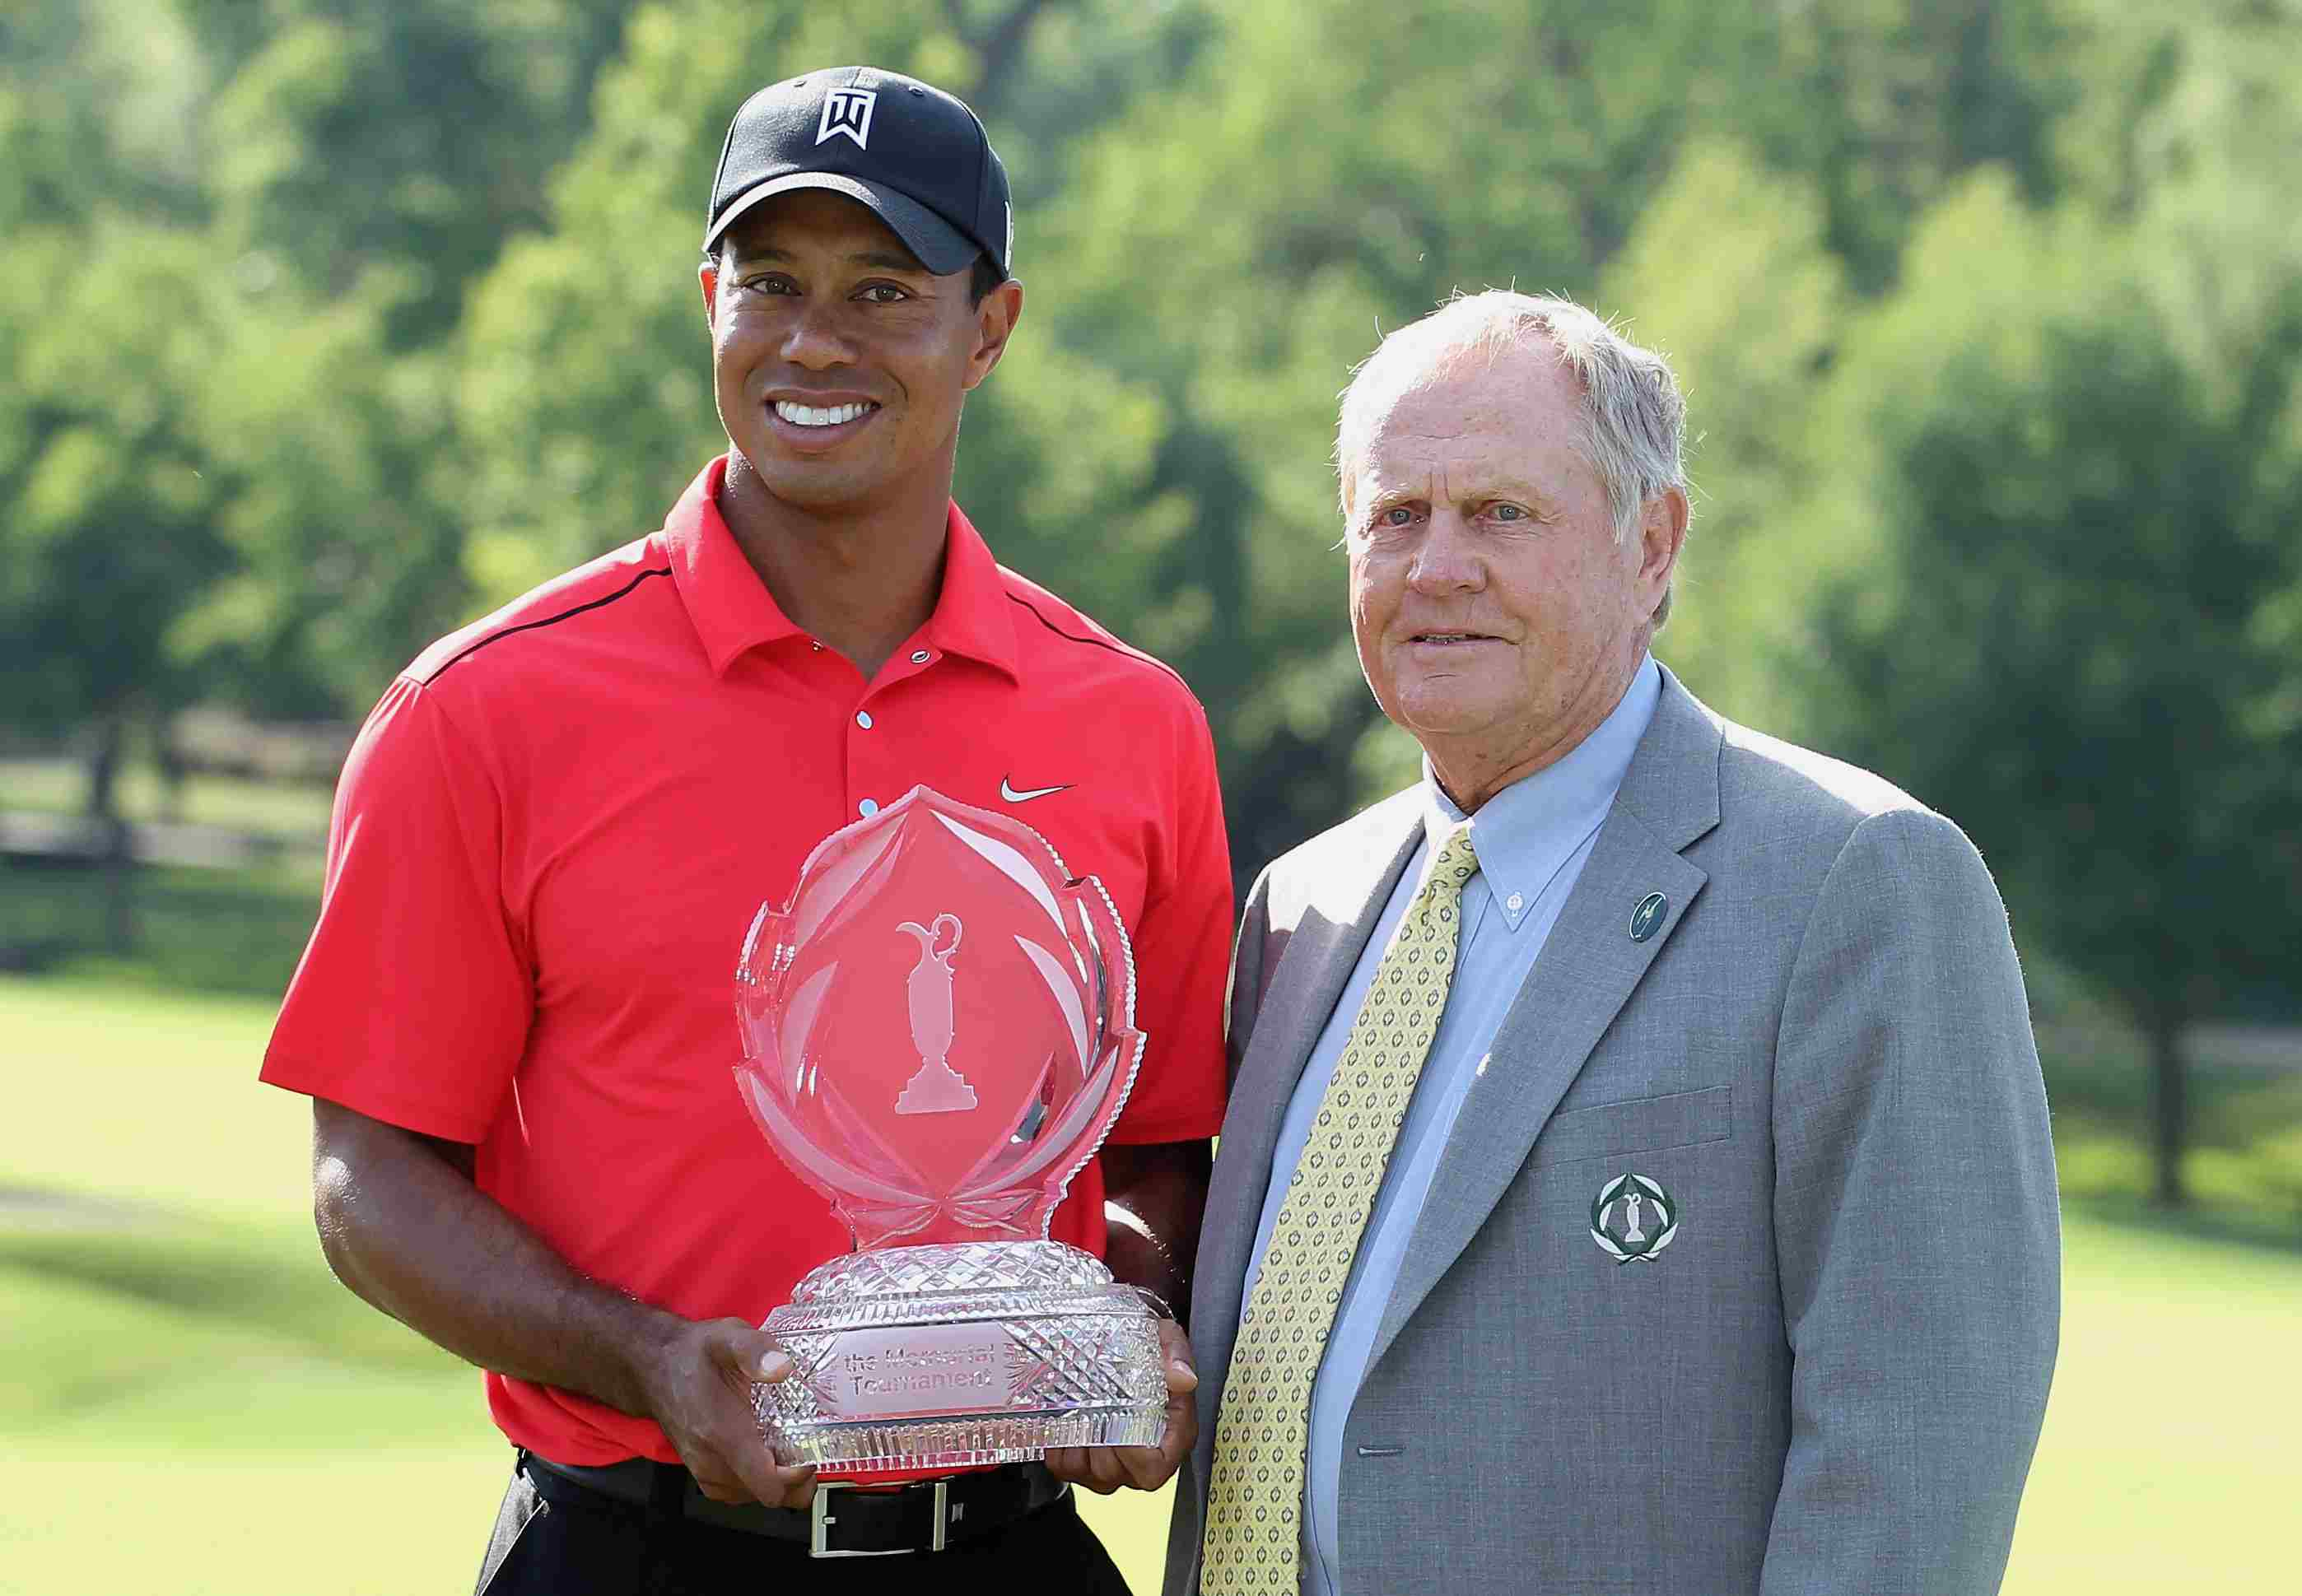 Tournament founder Jack Nicklaus poses with Tiger Woods after Tiger's two-stroke victory at the 2012 Memorial Tournament